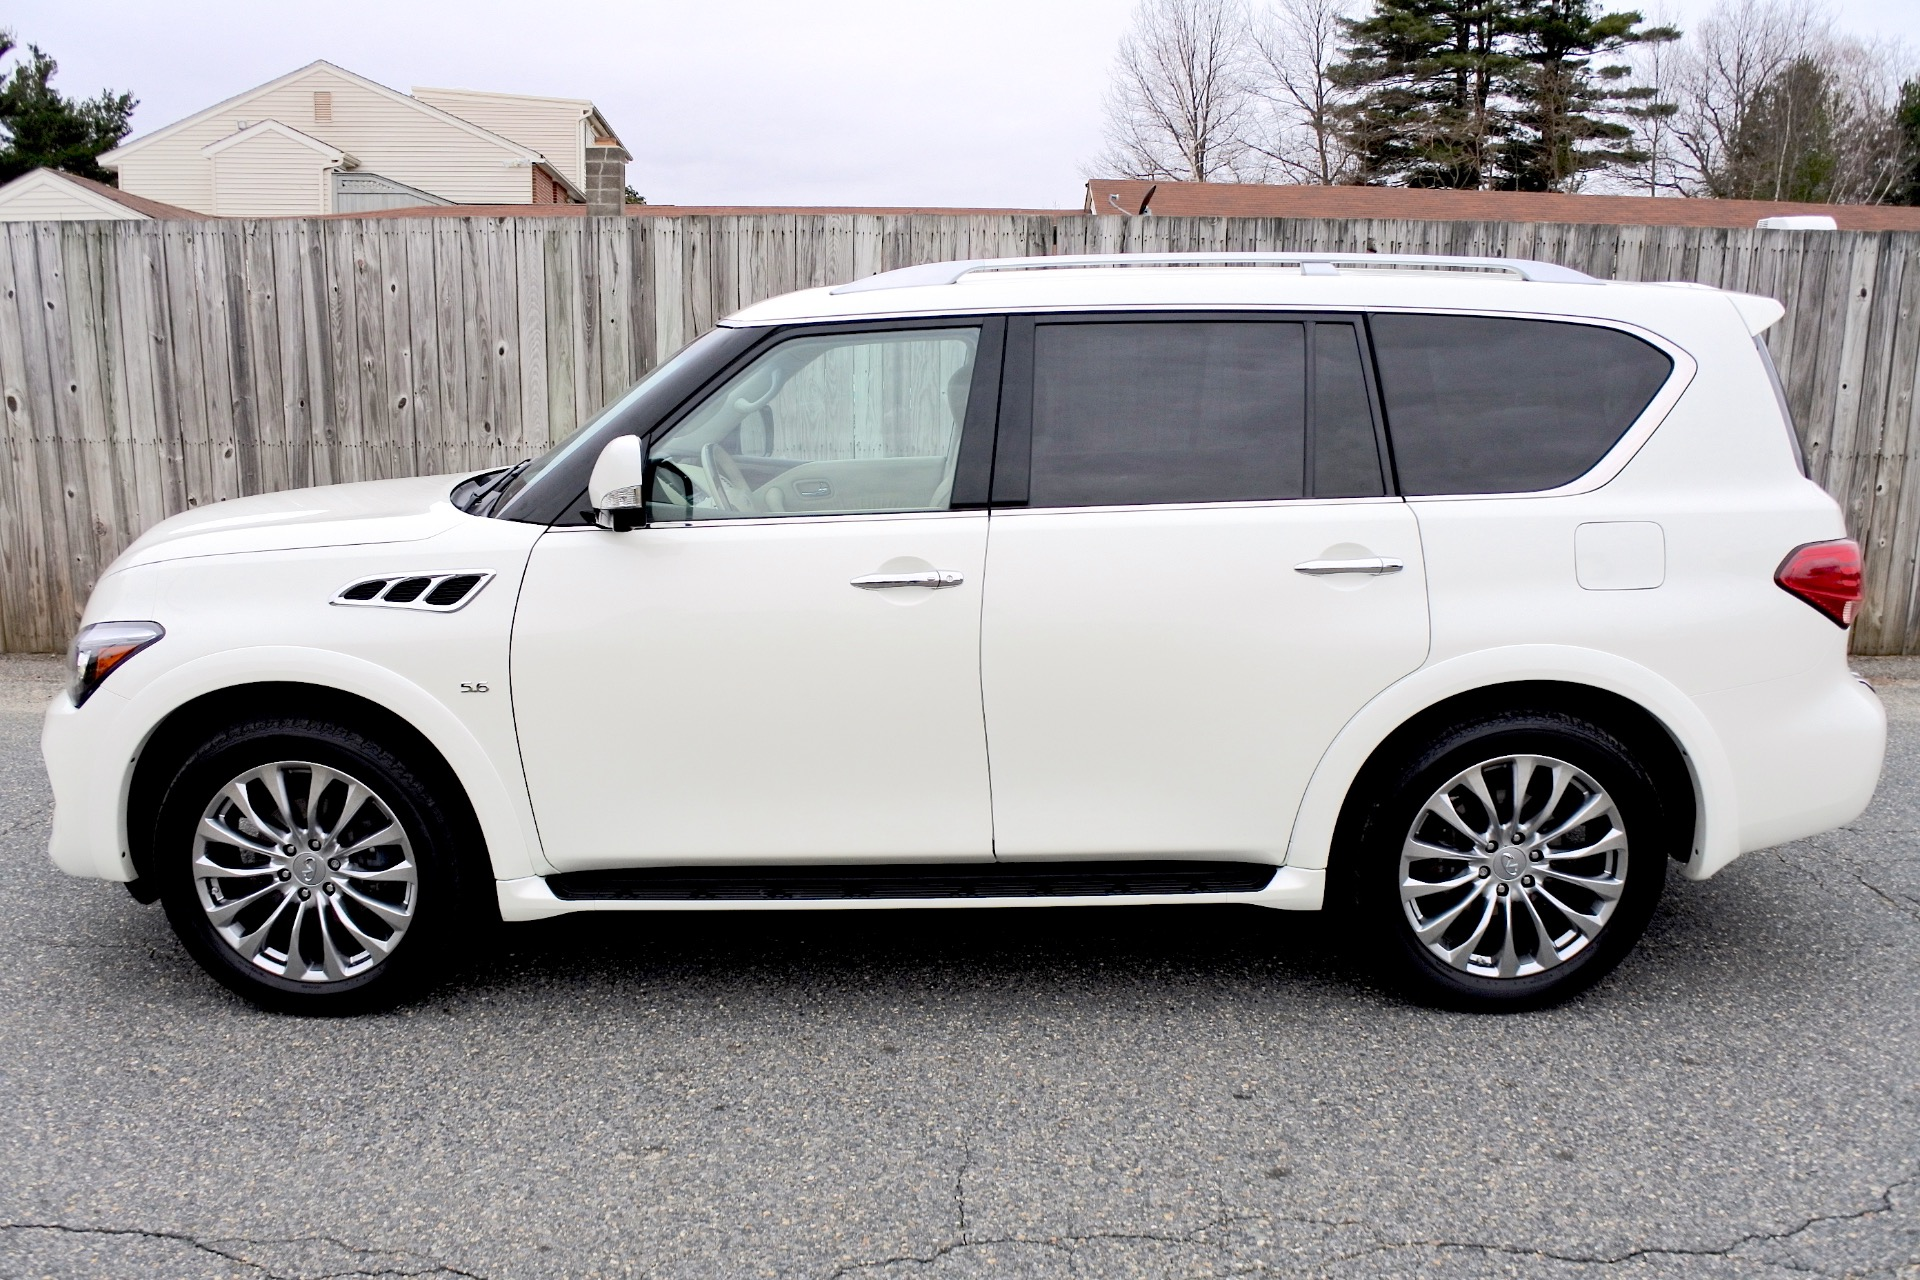 Used 2015 Infiniti Qx80 Limited 4WD Used 2015 Infiniti Qx80 Limited 4WD for sale  at Metro West Motorcars LLC in Shrewsbury MA 2